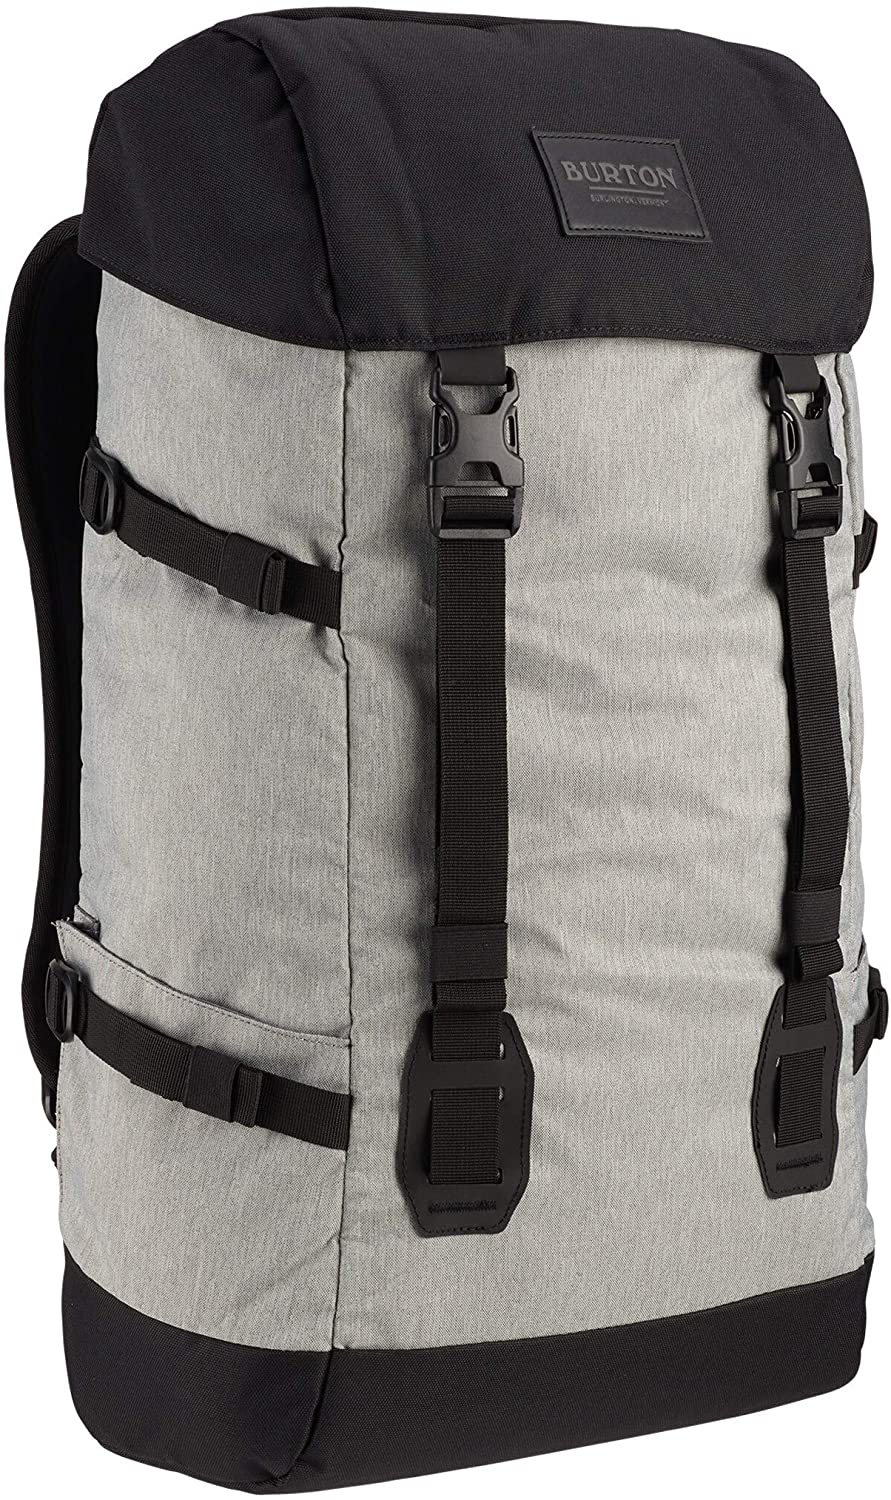 Burton Tinder 2.0 Backpack (Gray Heather) $19.40 + Free S&H w/ Prime or orders $25+ ~ Amazon